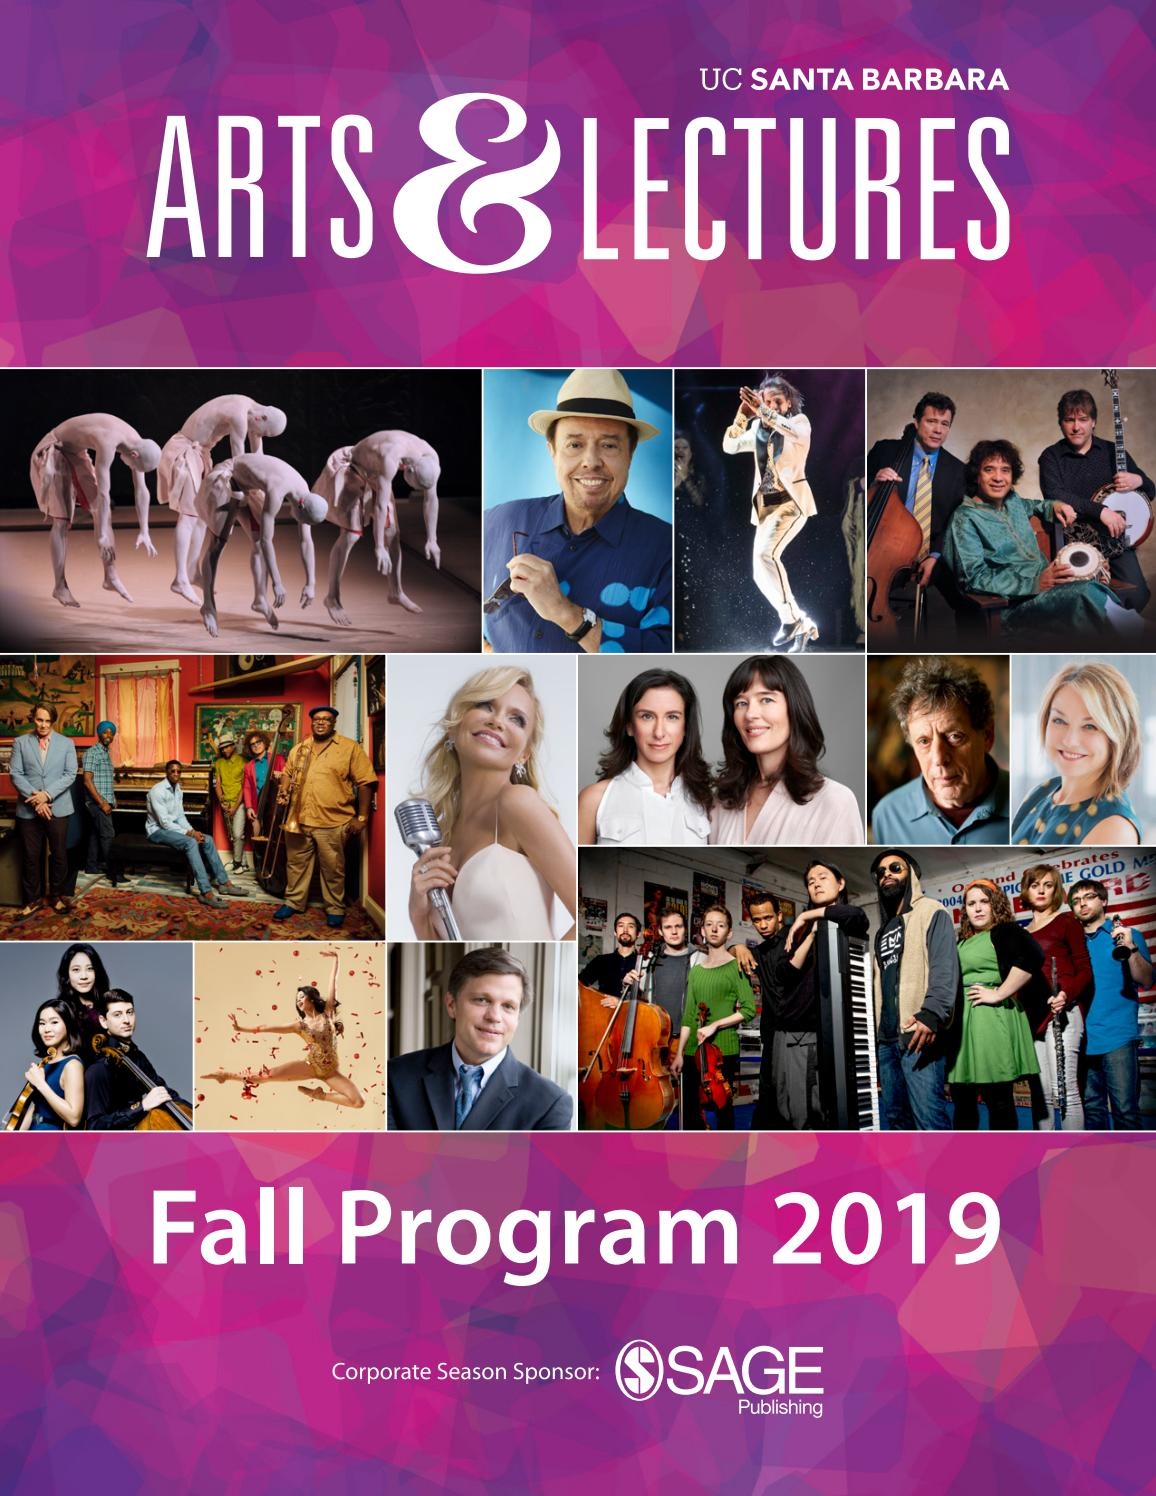 Ucsb Arts Lectures Fall Program 2019 By Ucsb Arts Lectures Issuu